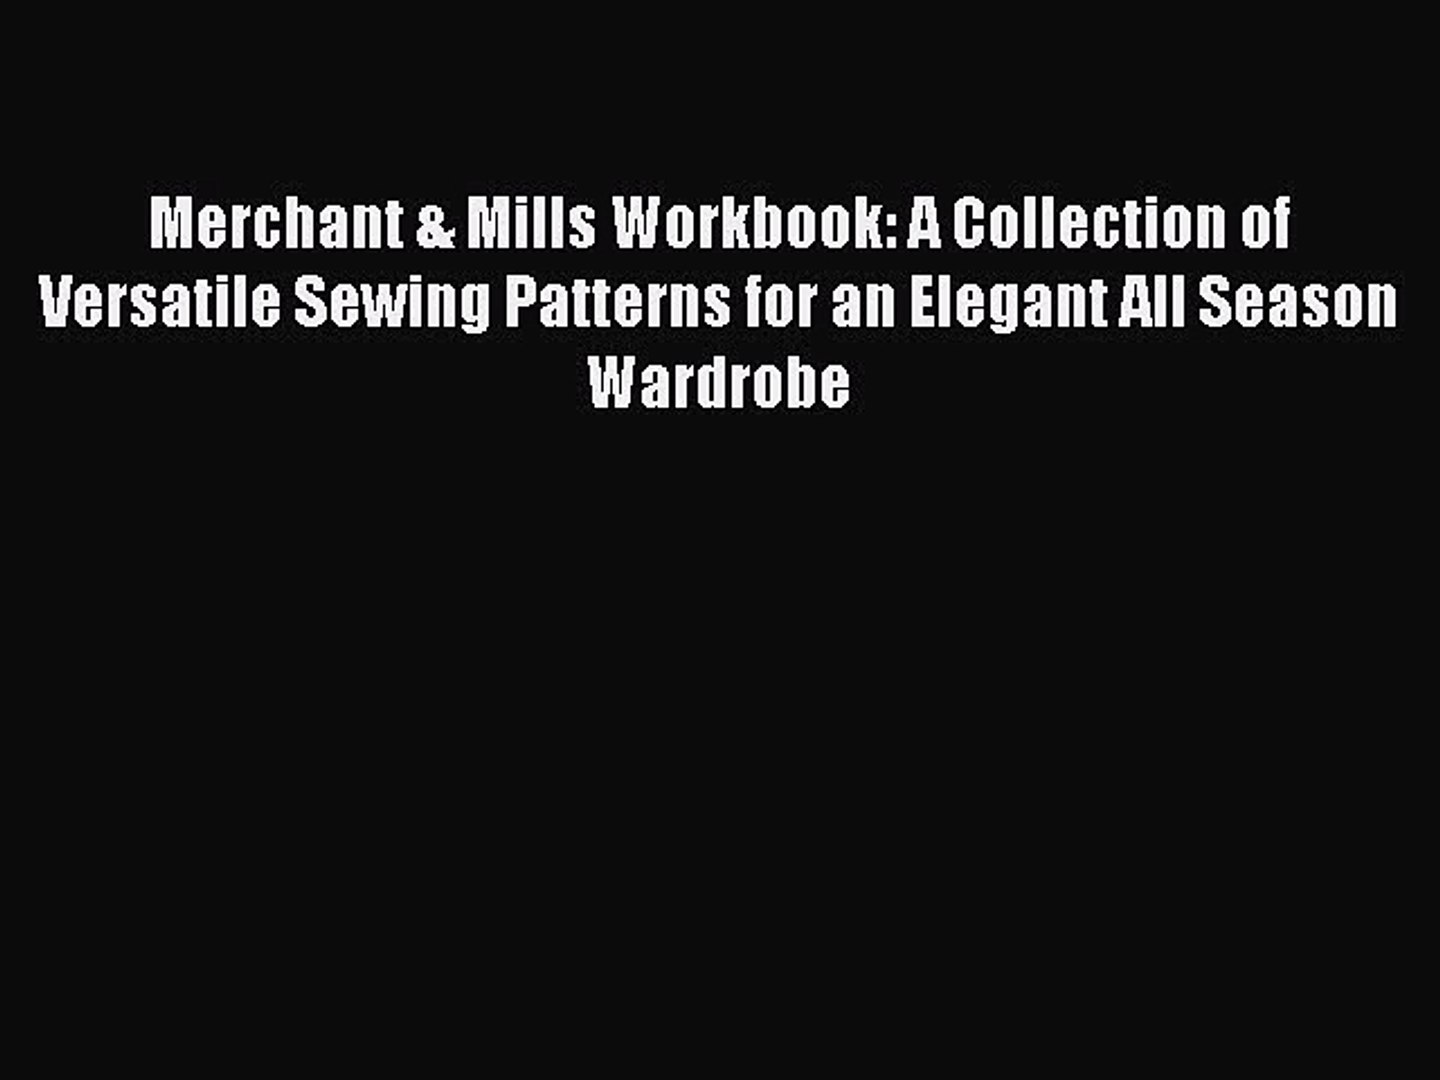 Read Merchant & Mills Workbook: A Collection of Versatile Sewing Patterns for an Elegant All